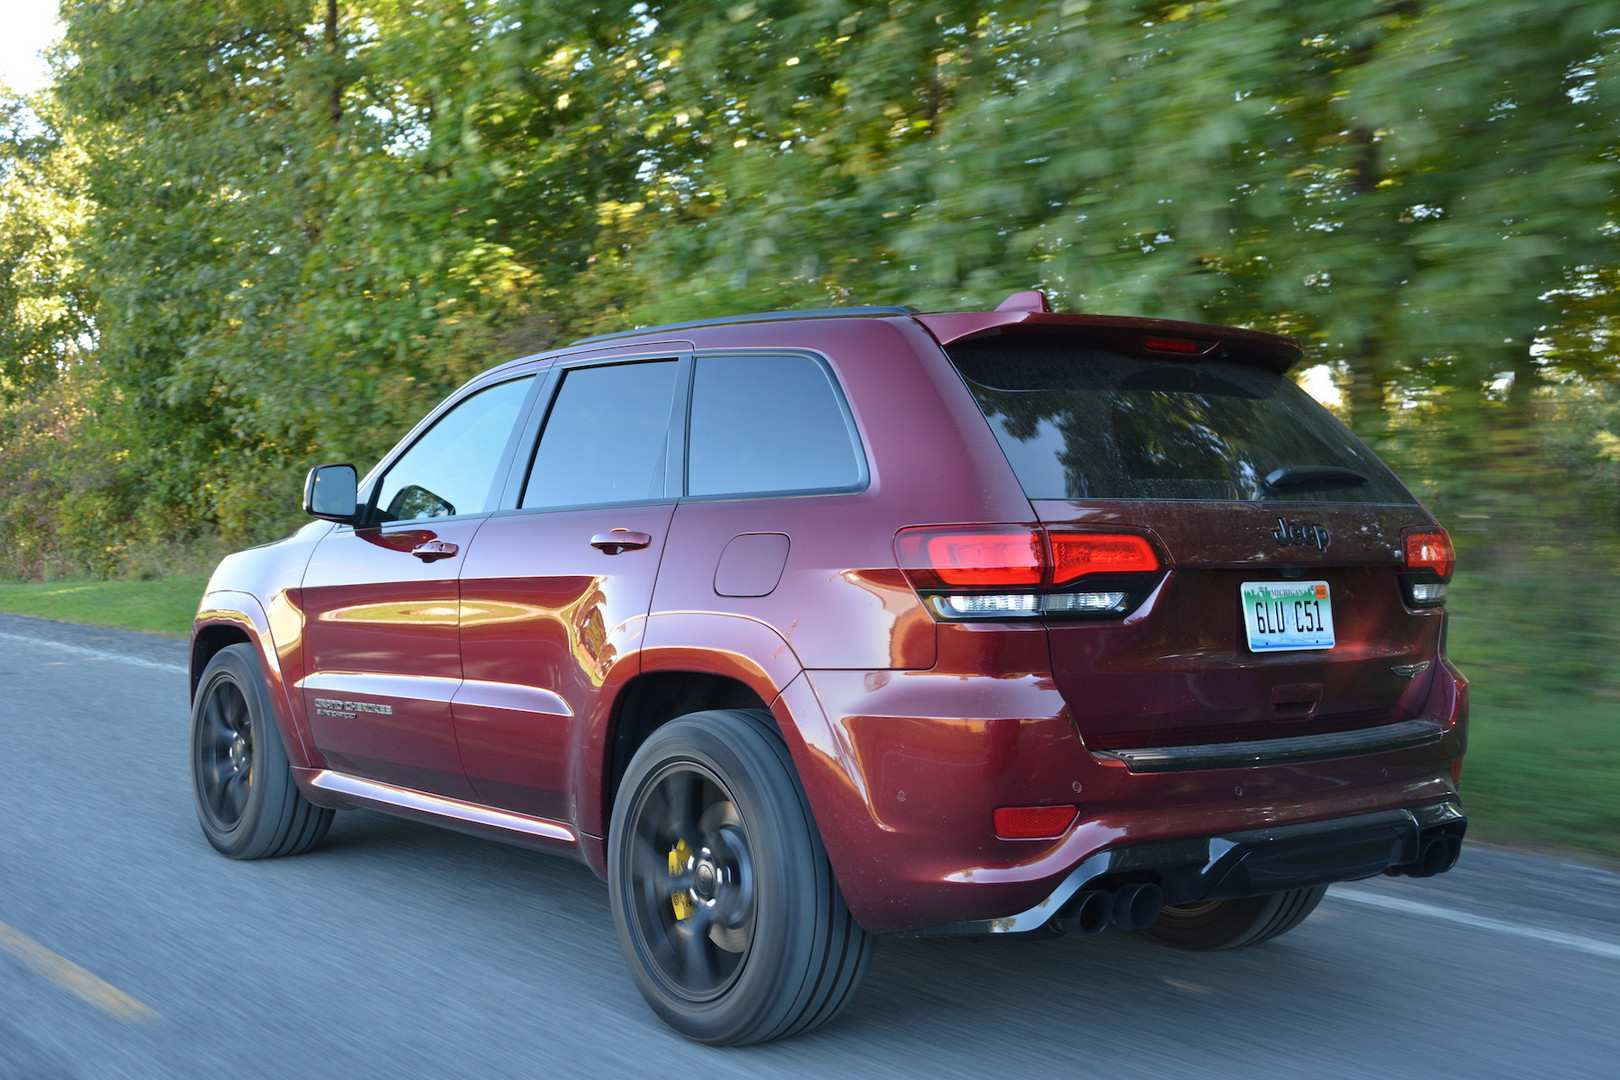 28 Best Review 2019 Jeep Trackhawk New Concept for 2019 Jeep Trackhawk